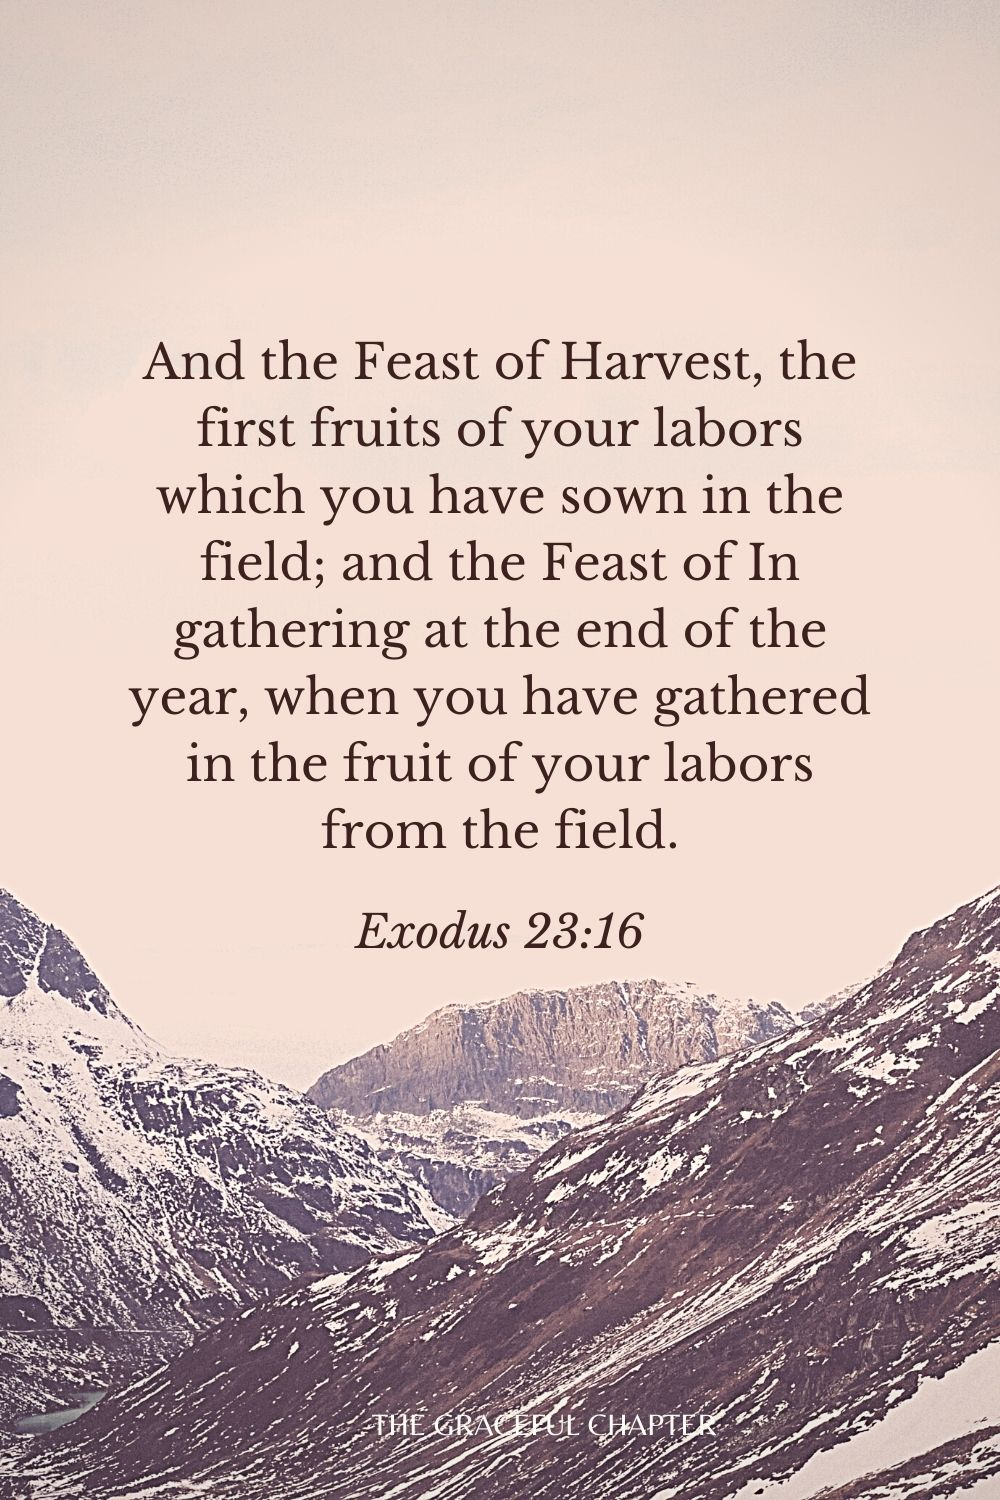 And the Feast of Harvest, the first fruits of your labors which you have sown in the field; and the Feast of In gathering at the end of the year, when you have gathered in the fruit of your labors from the field. Exodus 23:16